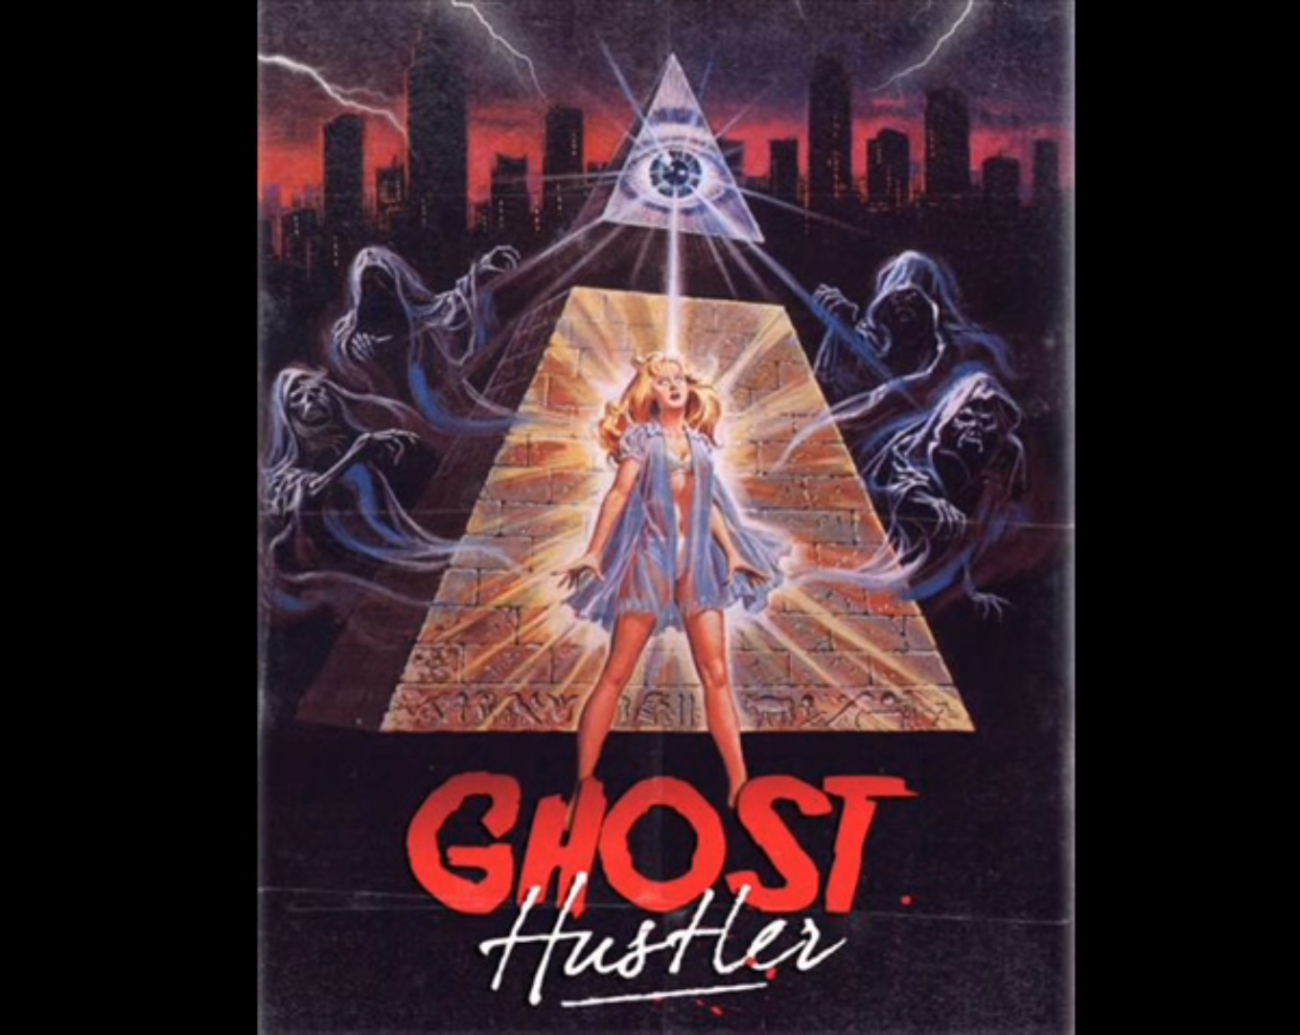 Ghost Hustler copy 1300x1035 - Throwback Thursday - Ghost Hustler - Someone Else's Ride